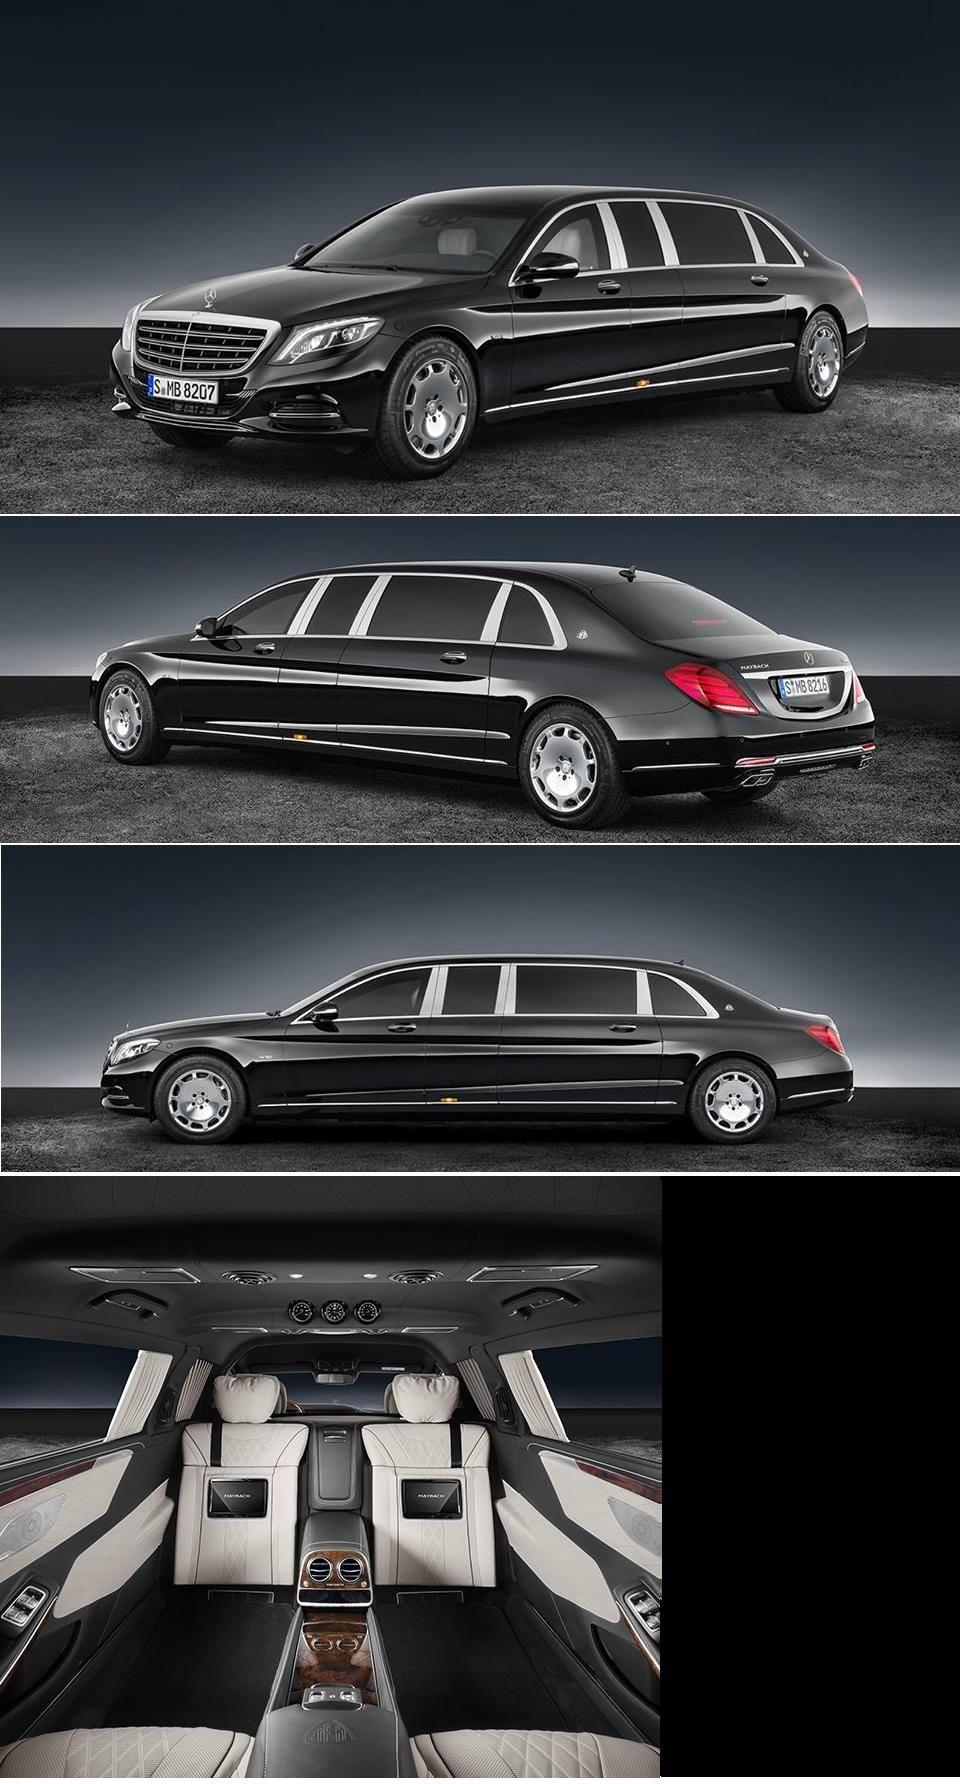 Mercedes Maybach S 600 Pullman Guard Automobile High End Luxury